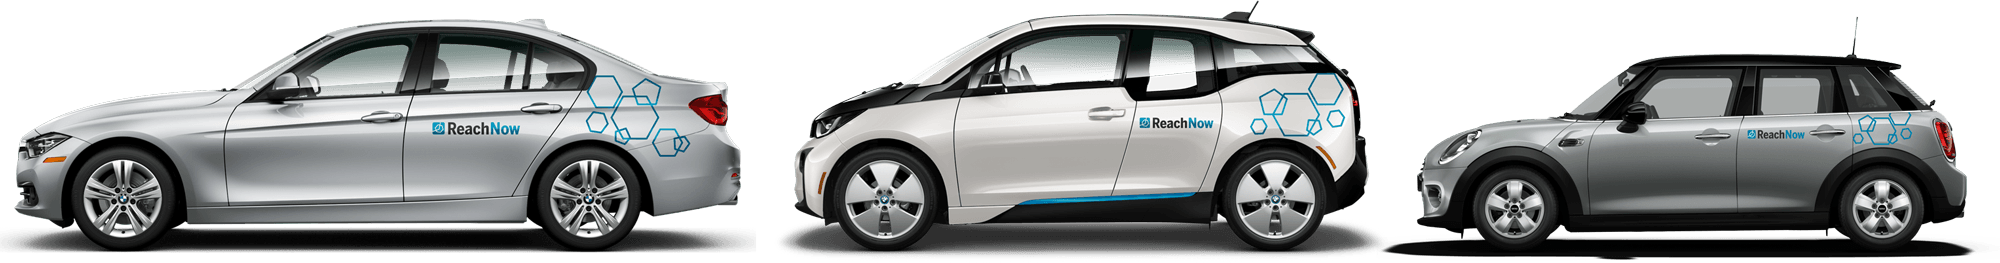 ReachNow-Car-Family